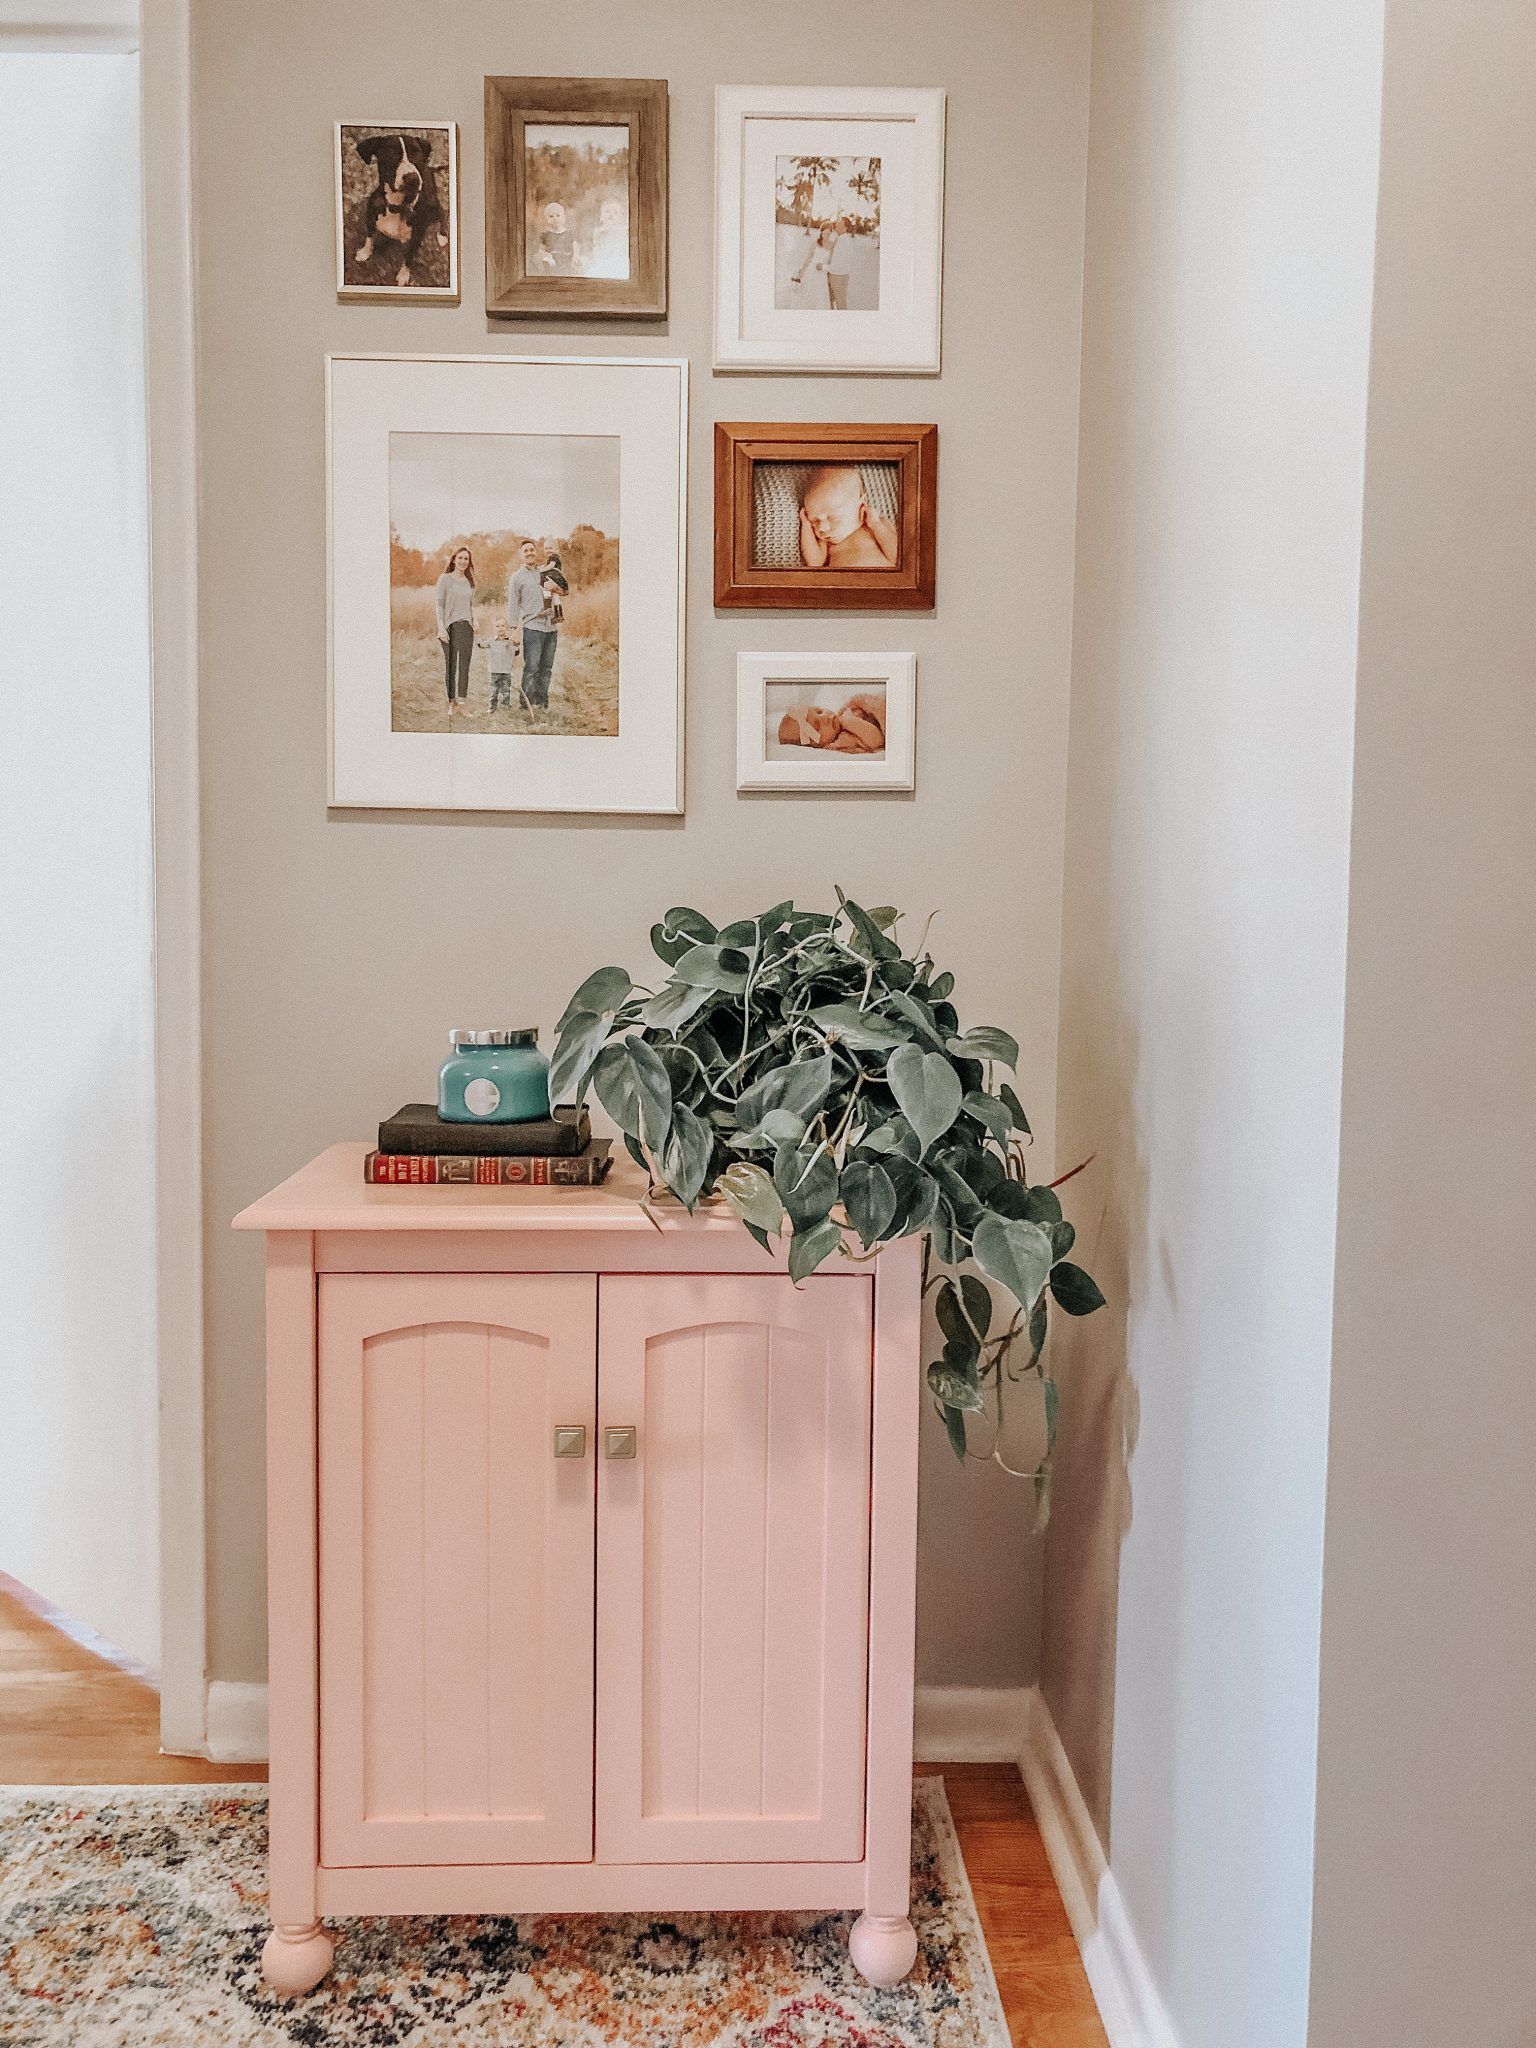 Hallway makeover | Daily Splendor Life and Style | spring update, hallway refresh, painting, #DIY #homeremodel #homedecor #renovations #afterpicture #pinkcabinet